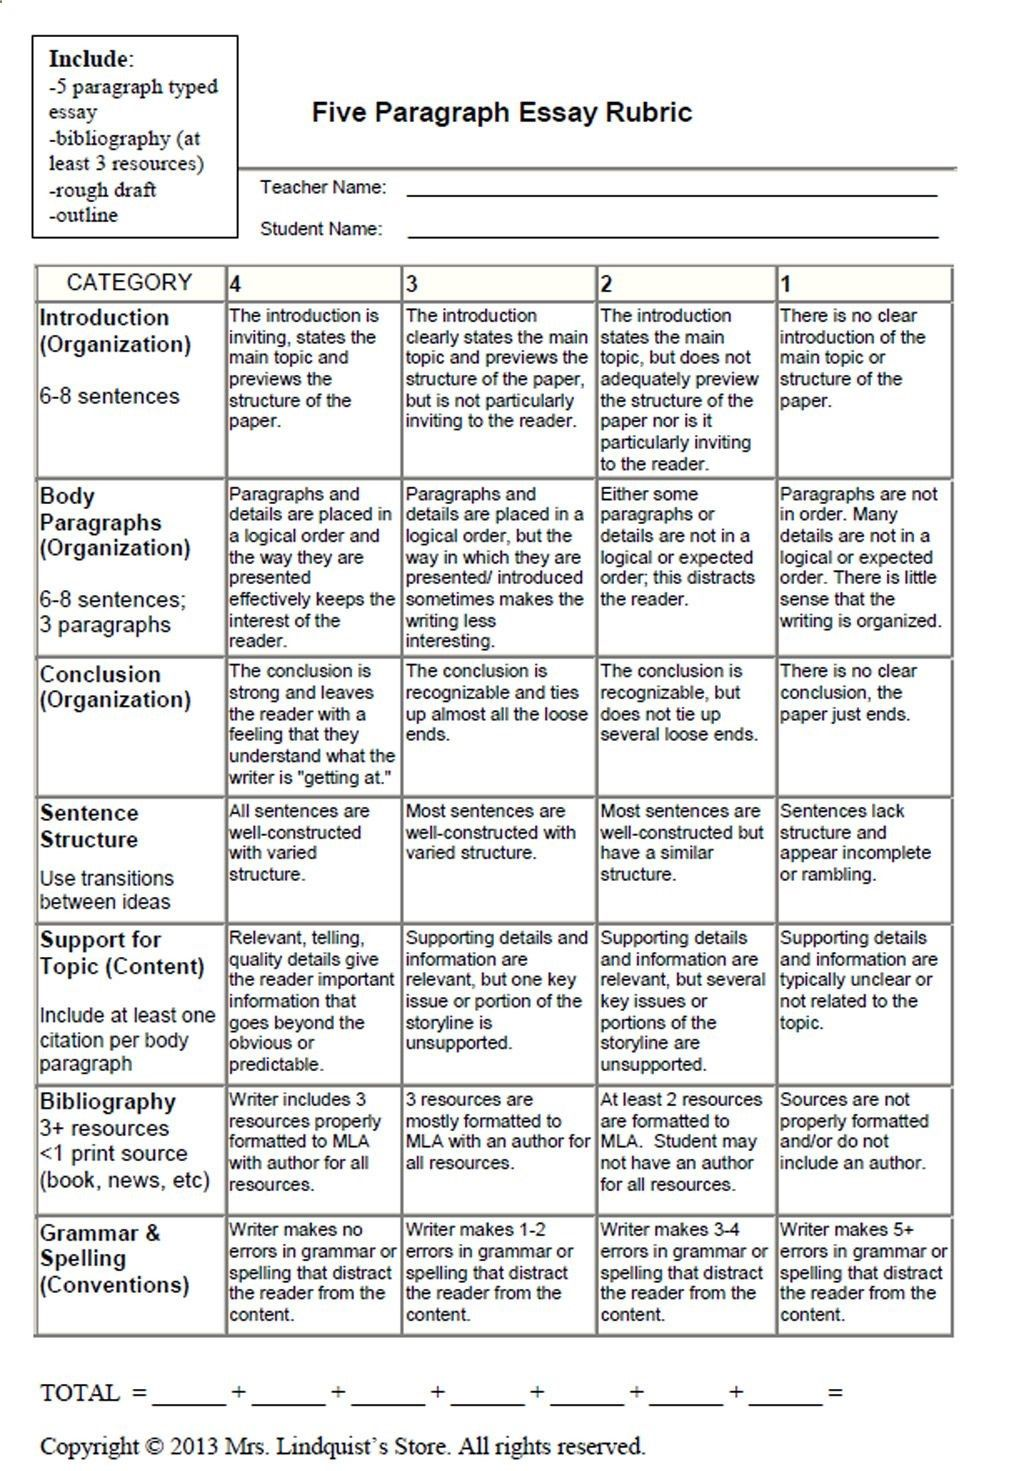 Using Graphic Organizers And Rubrics To Aid Students With Expository Persuasive Writing Ca Essay Writing Help Persuasive Writing Writing A Persuasive Essay [ 1471 x 1024 Pixel ]